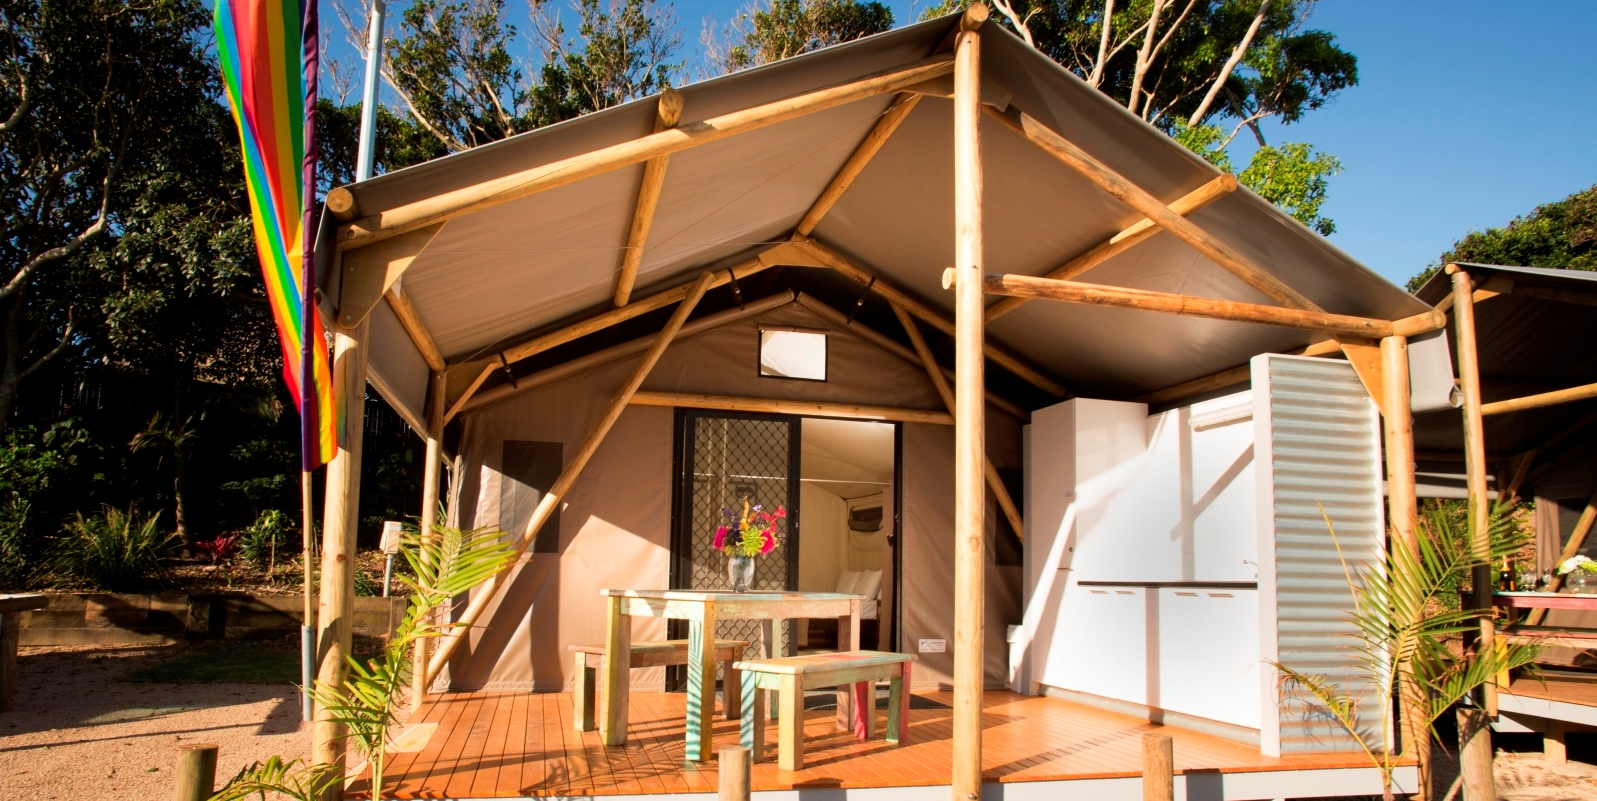 Our most recent client was the First Sun Holiday Park in Byron Bay. Situated right next to the beach with views to die for our new Gl&ing safari tents ... & Byron Bay Glamping - safari tentssafari tents